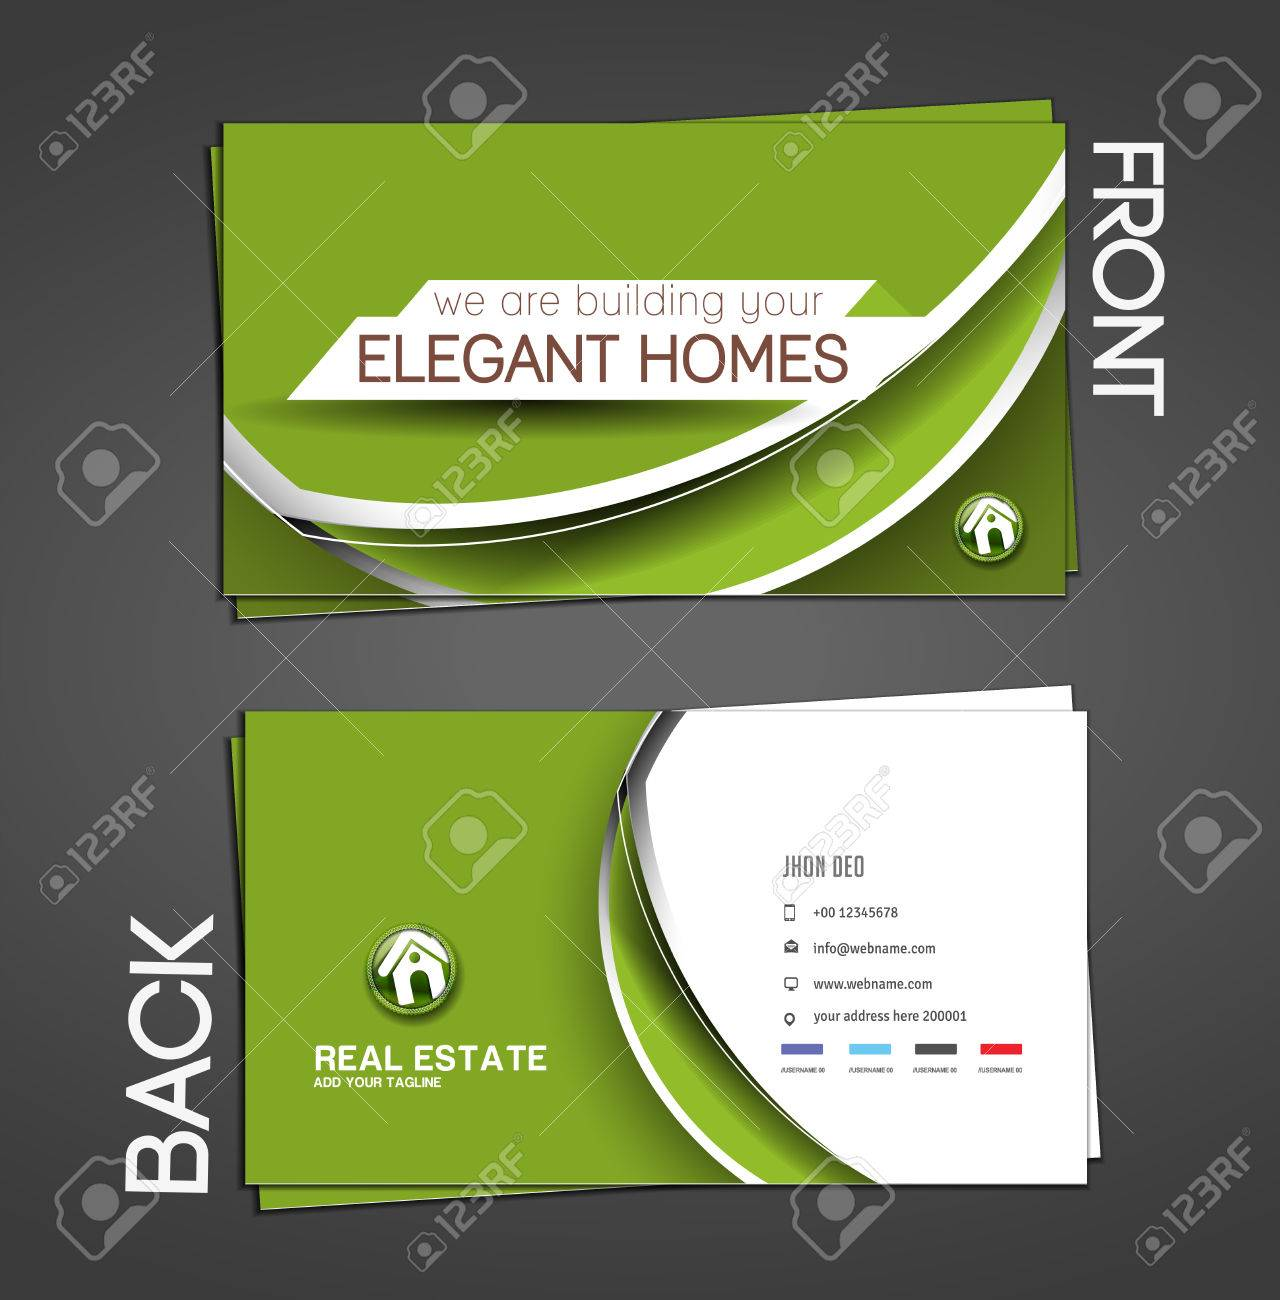 Real estate agent business card set template royalty free cliparts real estate agent business card set template stock vector 28394331 flashek Images